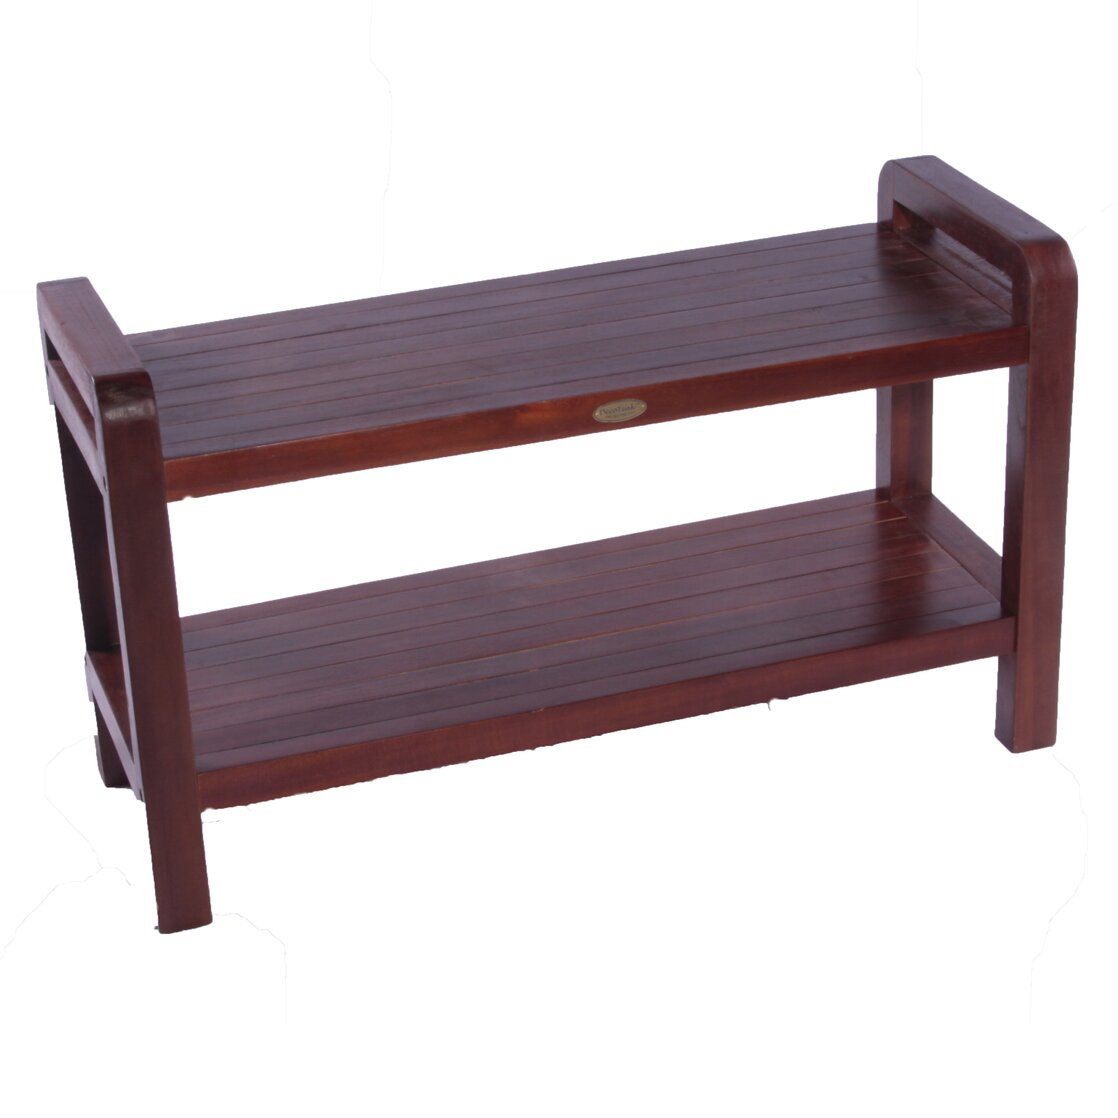 Decoteak Liftaide Teak Ergonomic Spa Shower Bench Reviews Wayfair